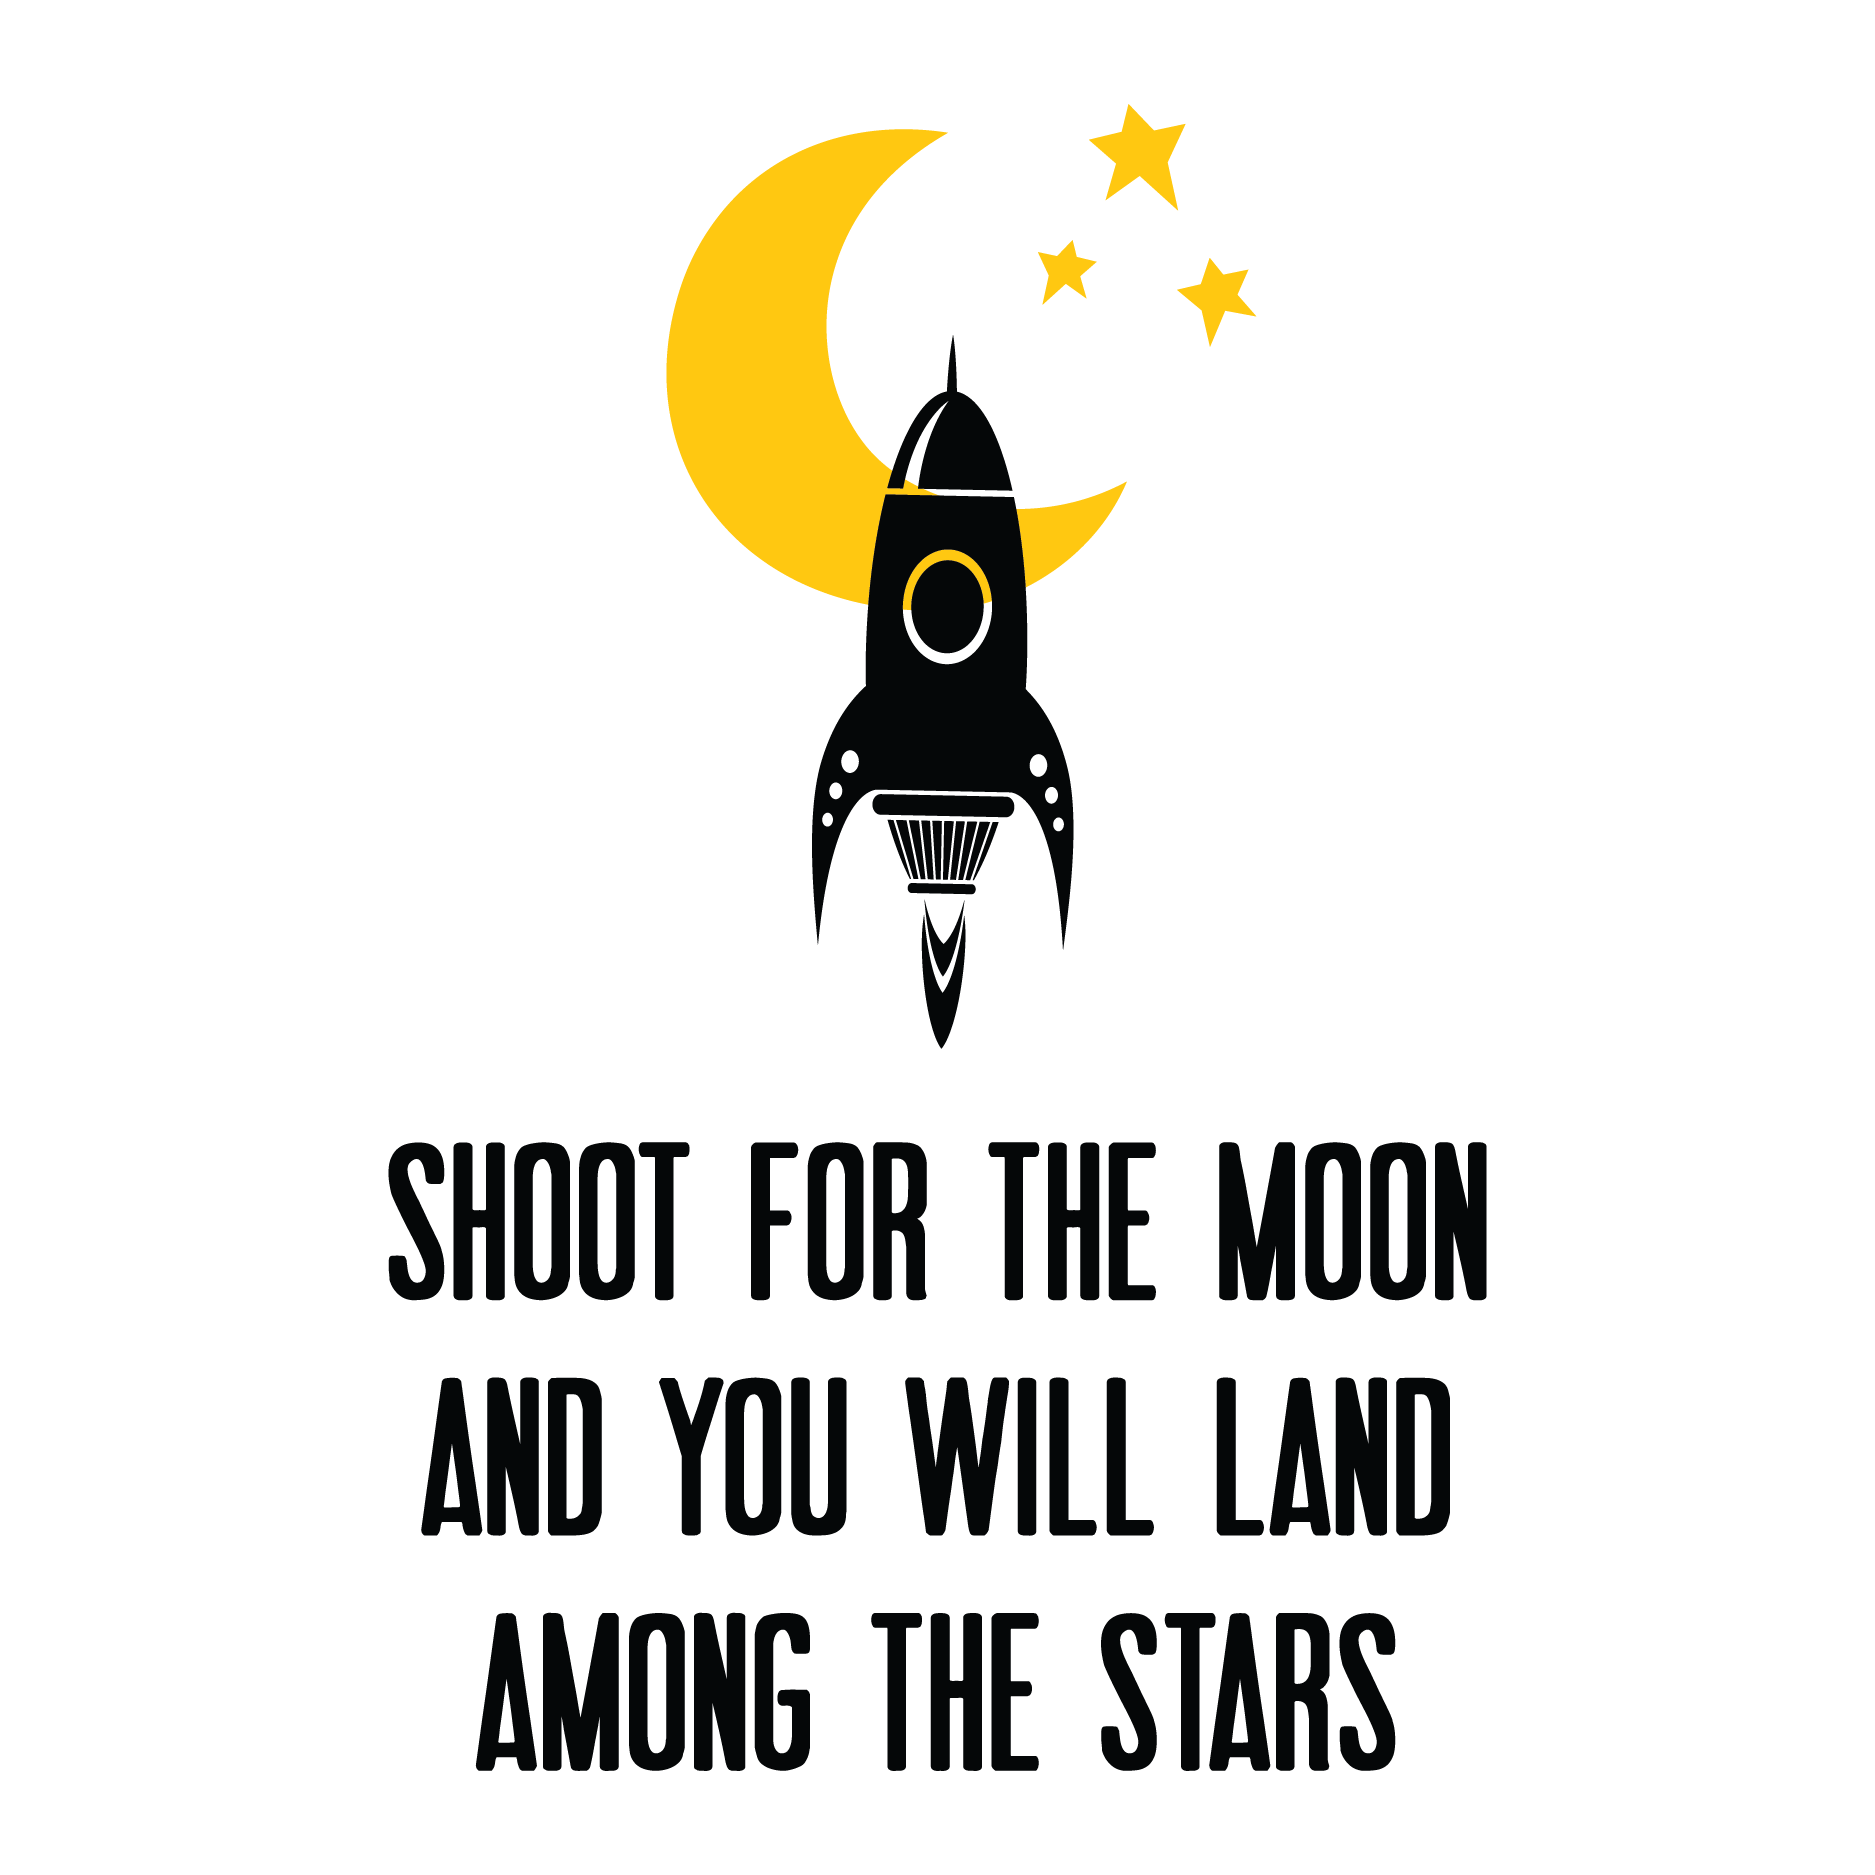 Shoot For The Moon Wall Quotes Decal Wallquotescom